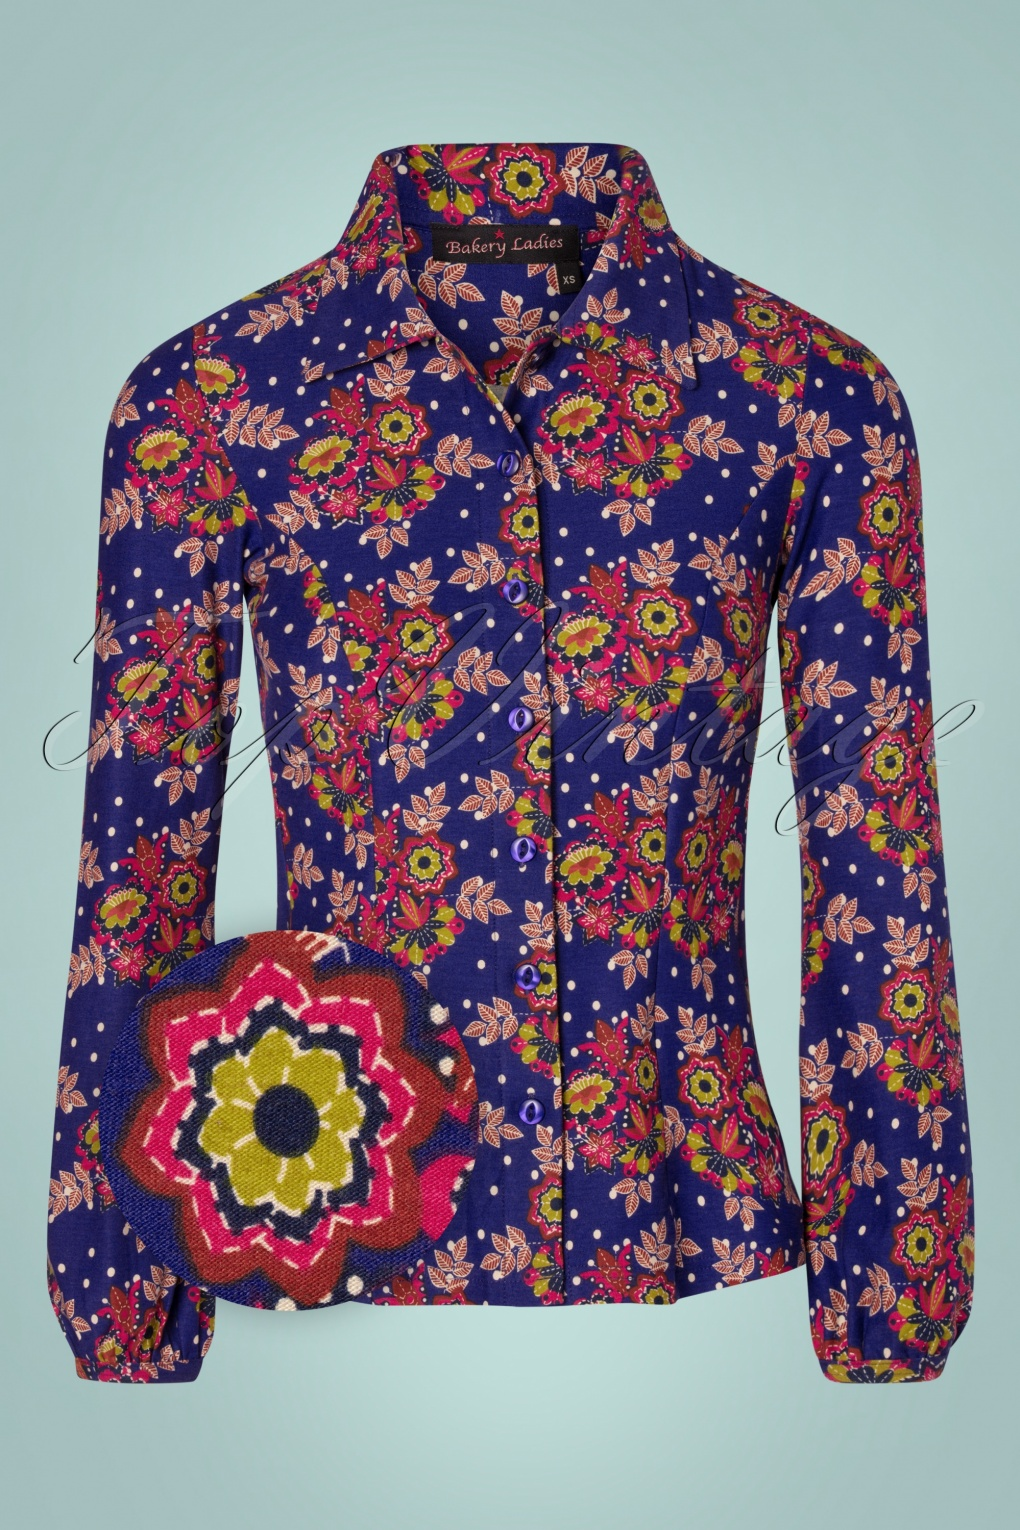 60s Shirts, T-shirts, Blouses, Hippie Shirts 60s Ginny Clematis Flowers Dots Blouse in Royal Blue £54.76 AT vintagedancer.com